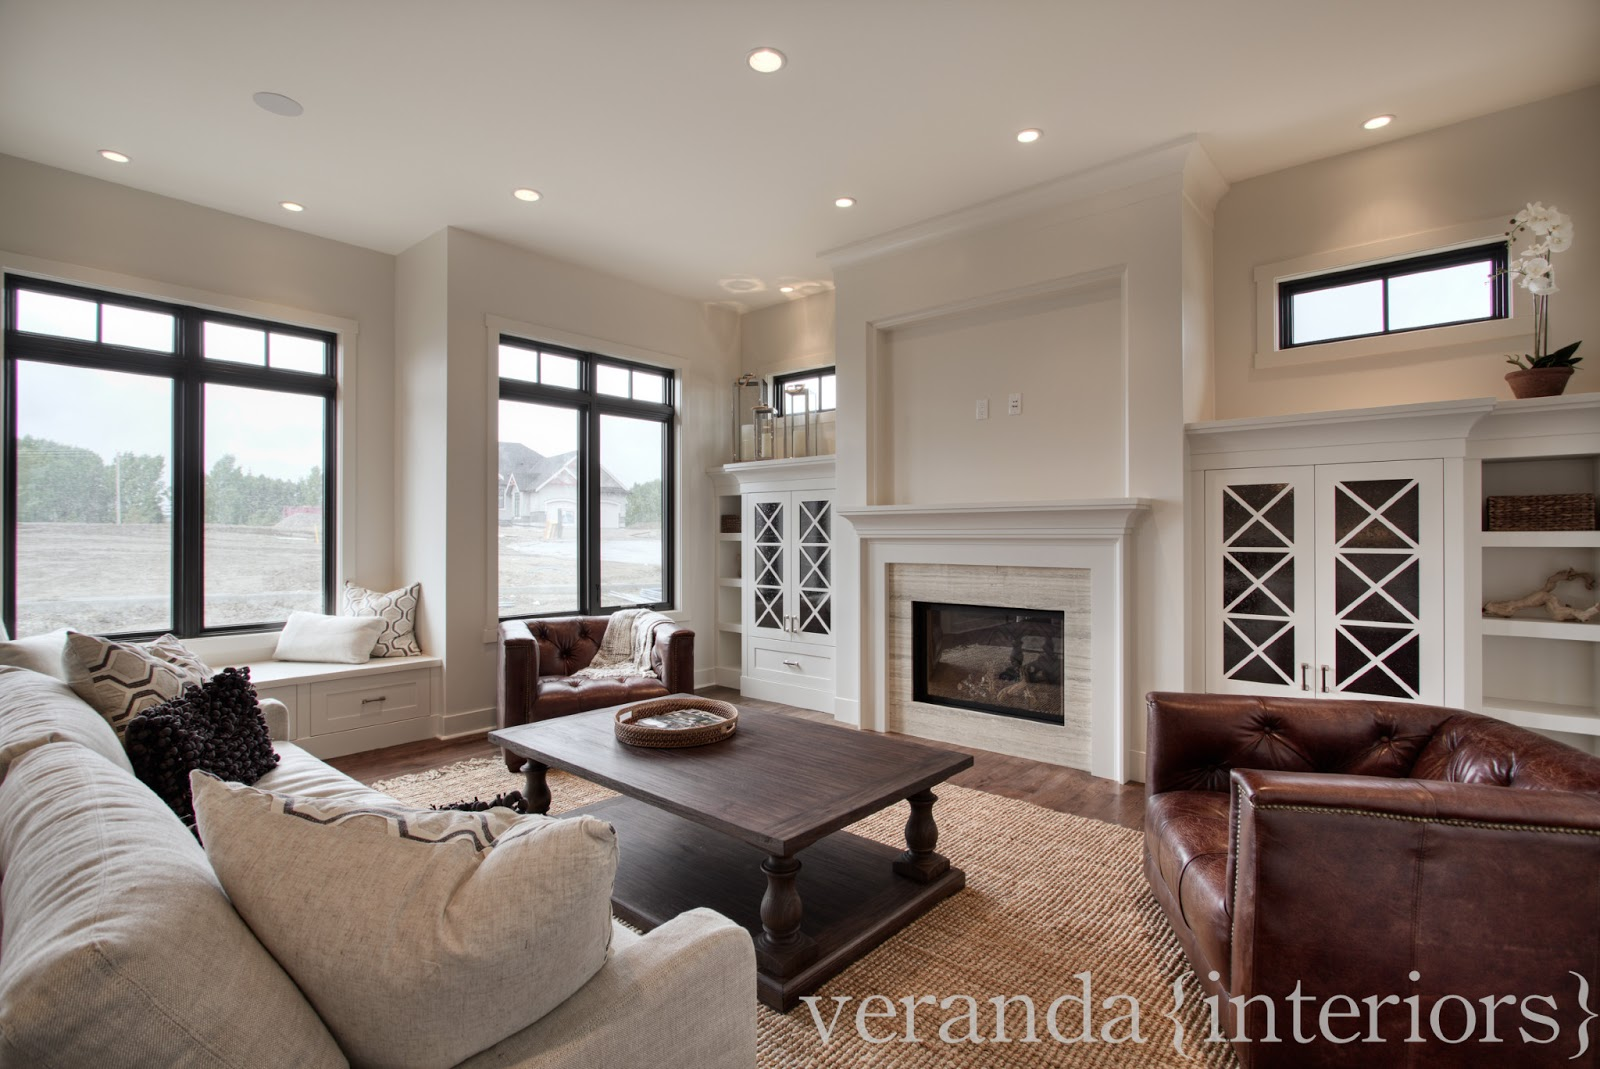 Final Images Watermark {Spyglass} U2013 Veranda Interior U2013 Young Professional  For Your Decor